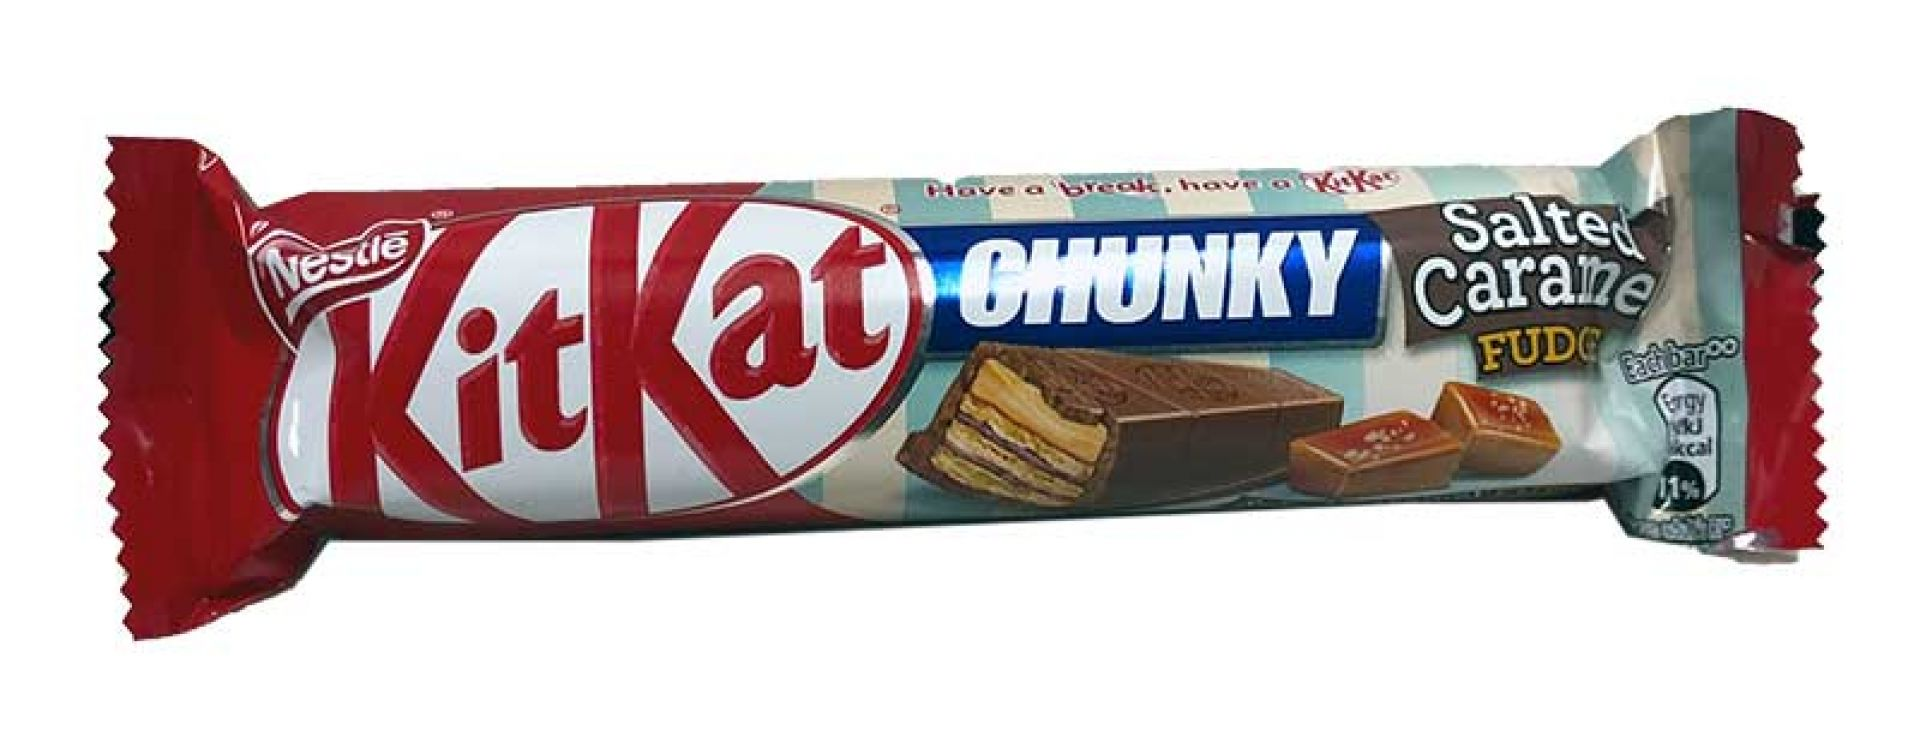 Kit Kat Chunky Salted Caramel Fudge 42g